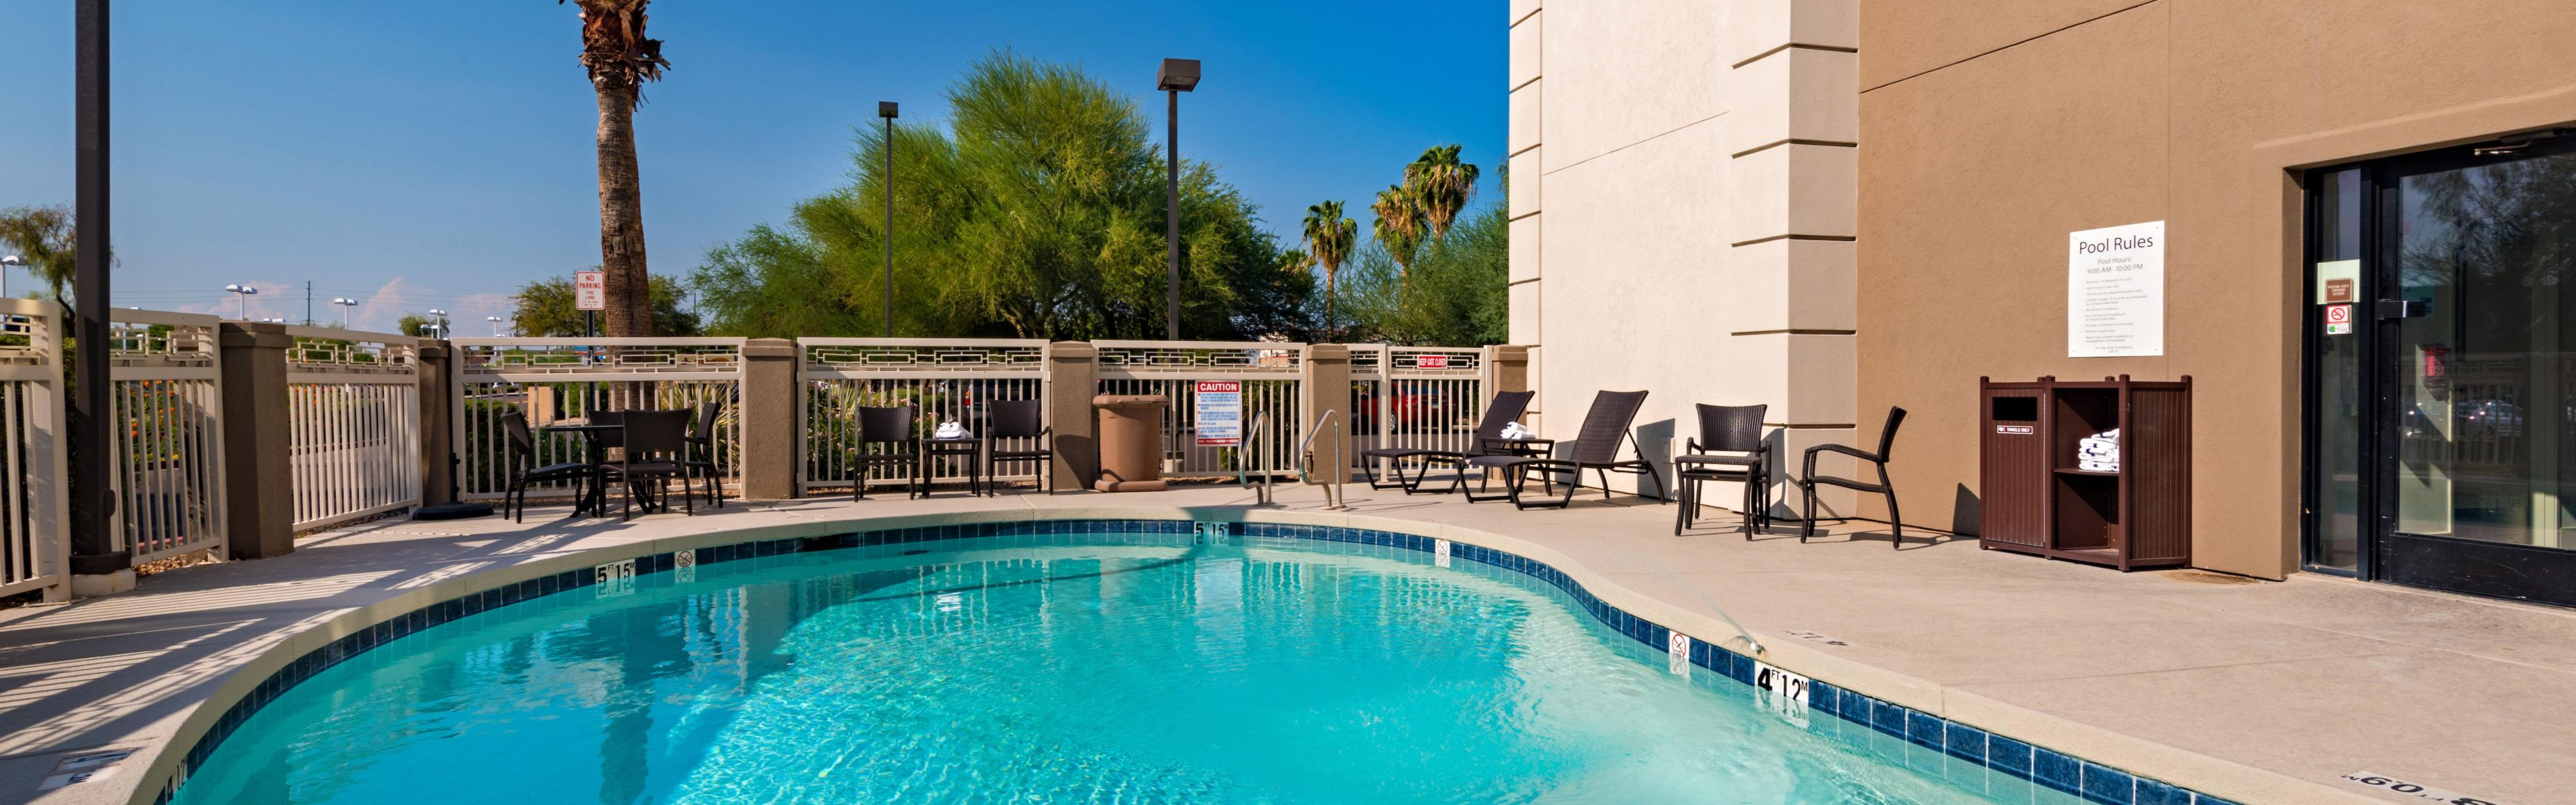 Holiday Inn Express Peoria North Glendale In Peoria Az